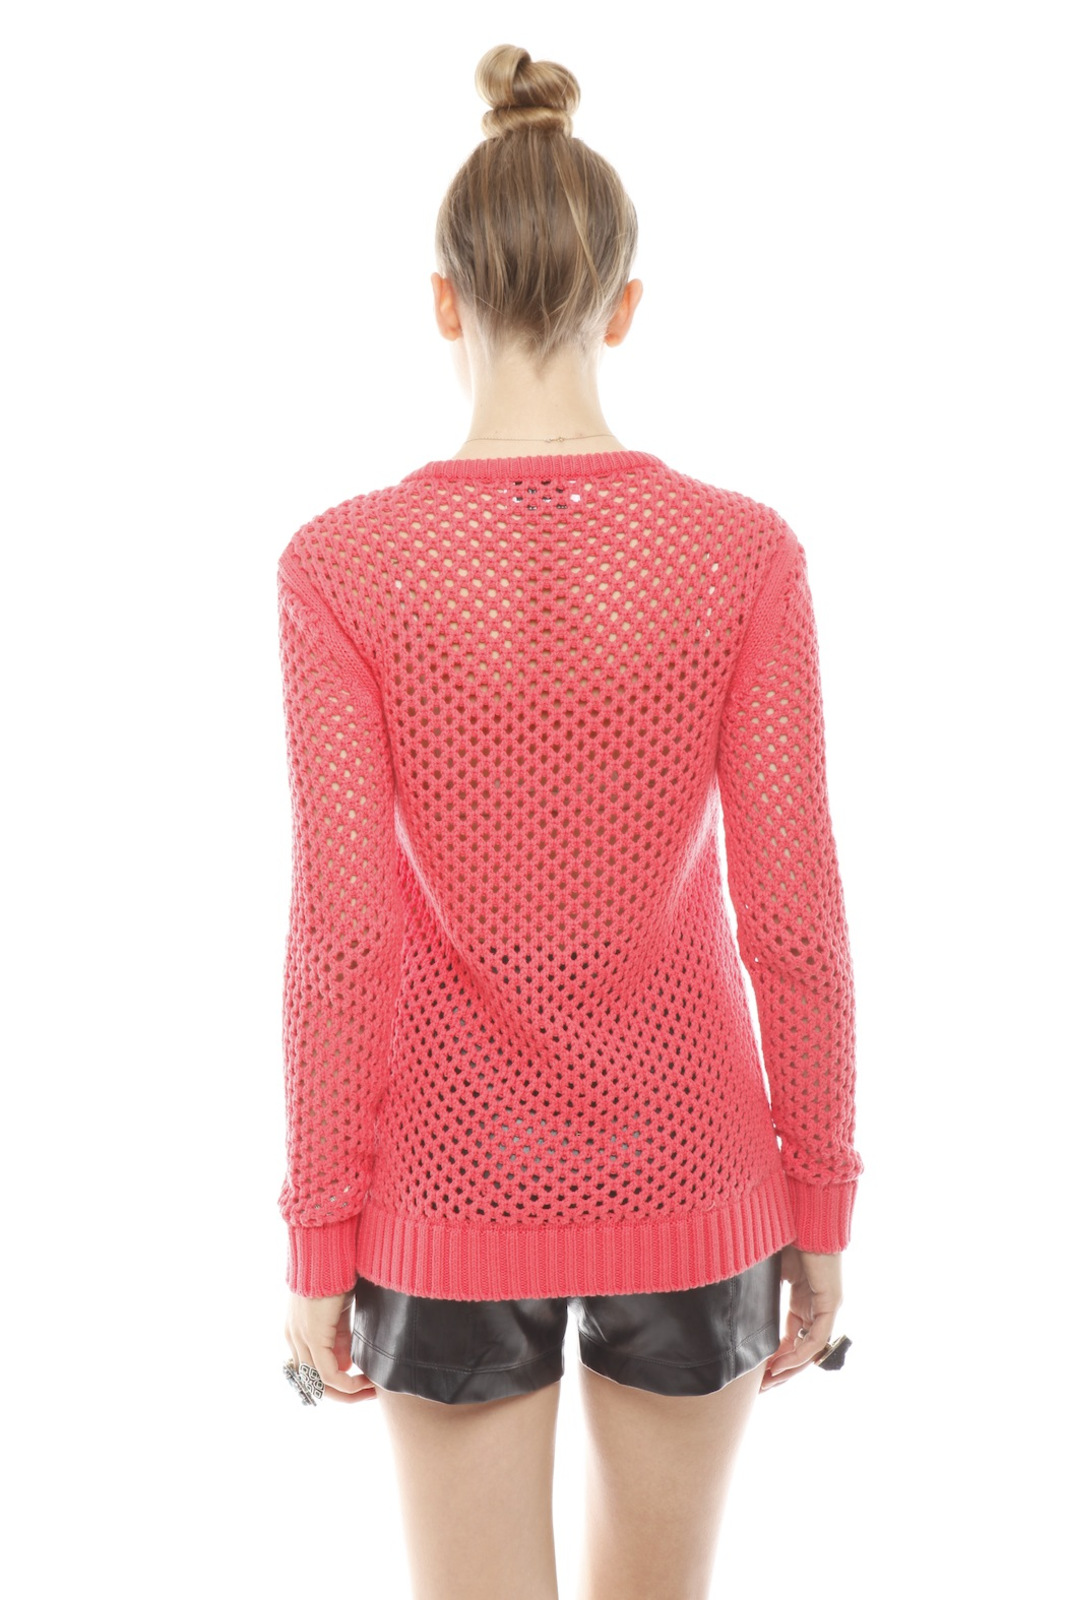 213 Industry Thick Open-Knit Sweater - Back Cropped Image